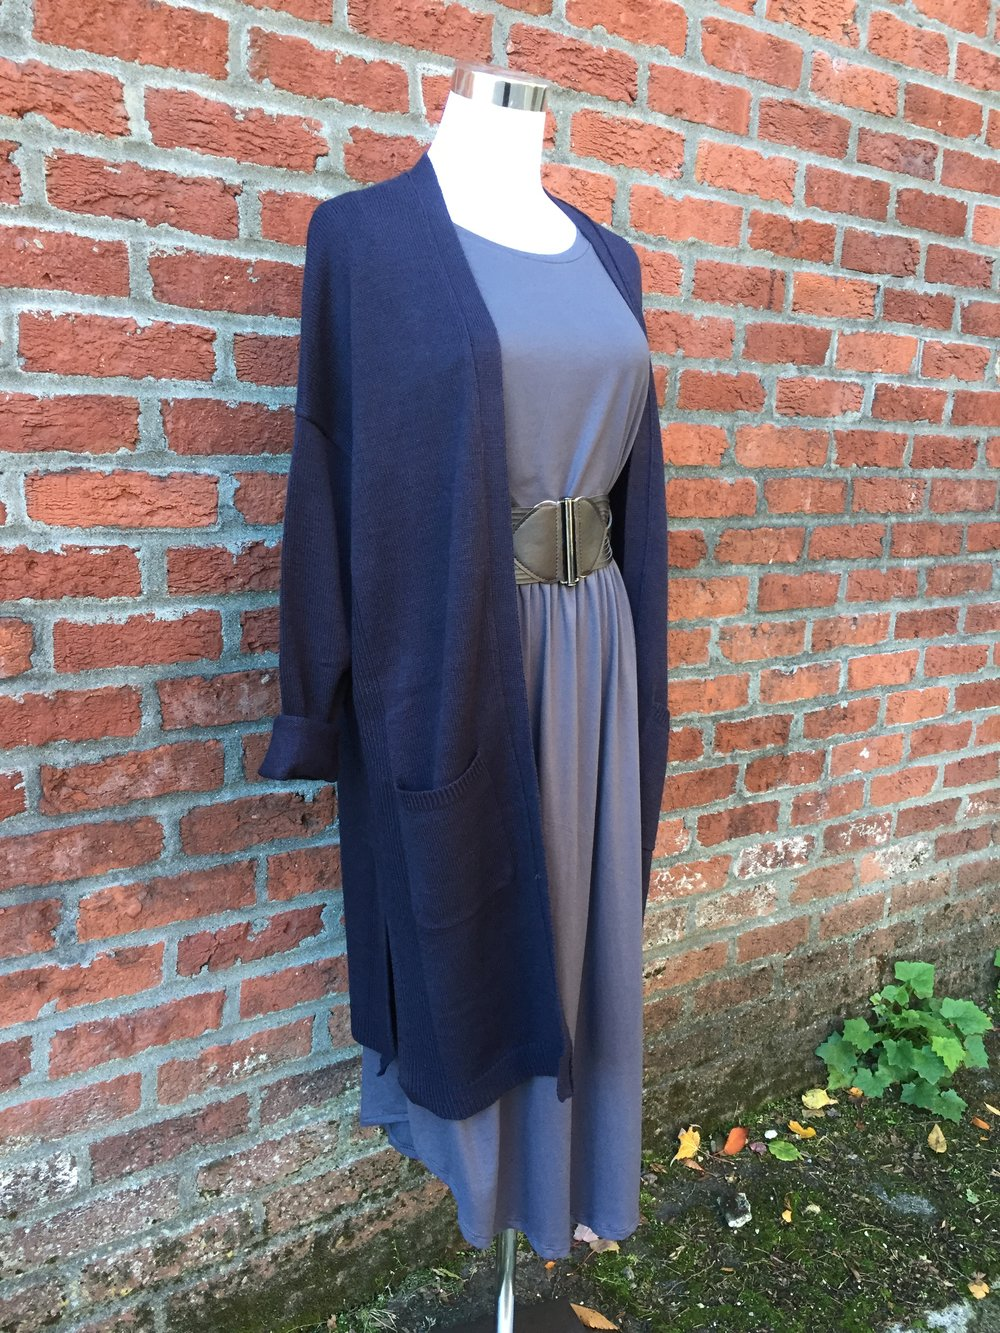 Long Navy Cardigan ($42)